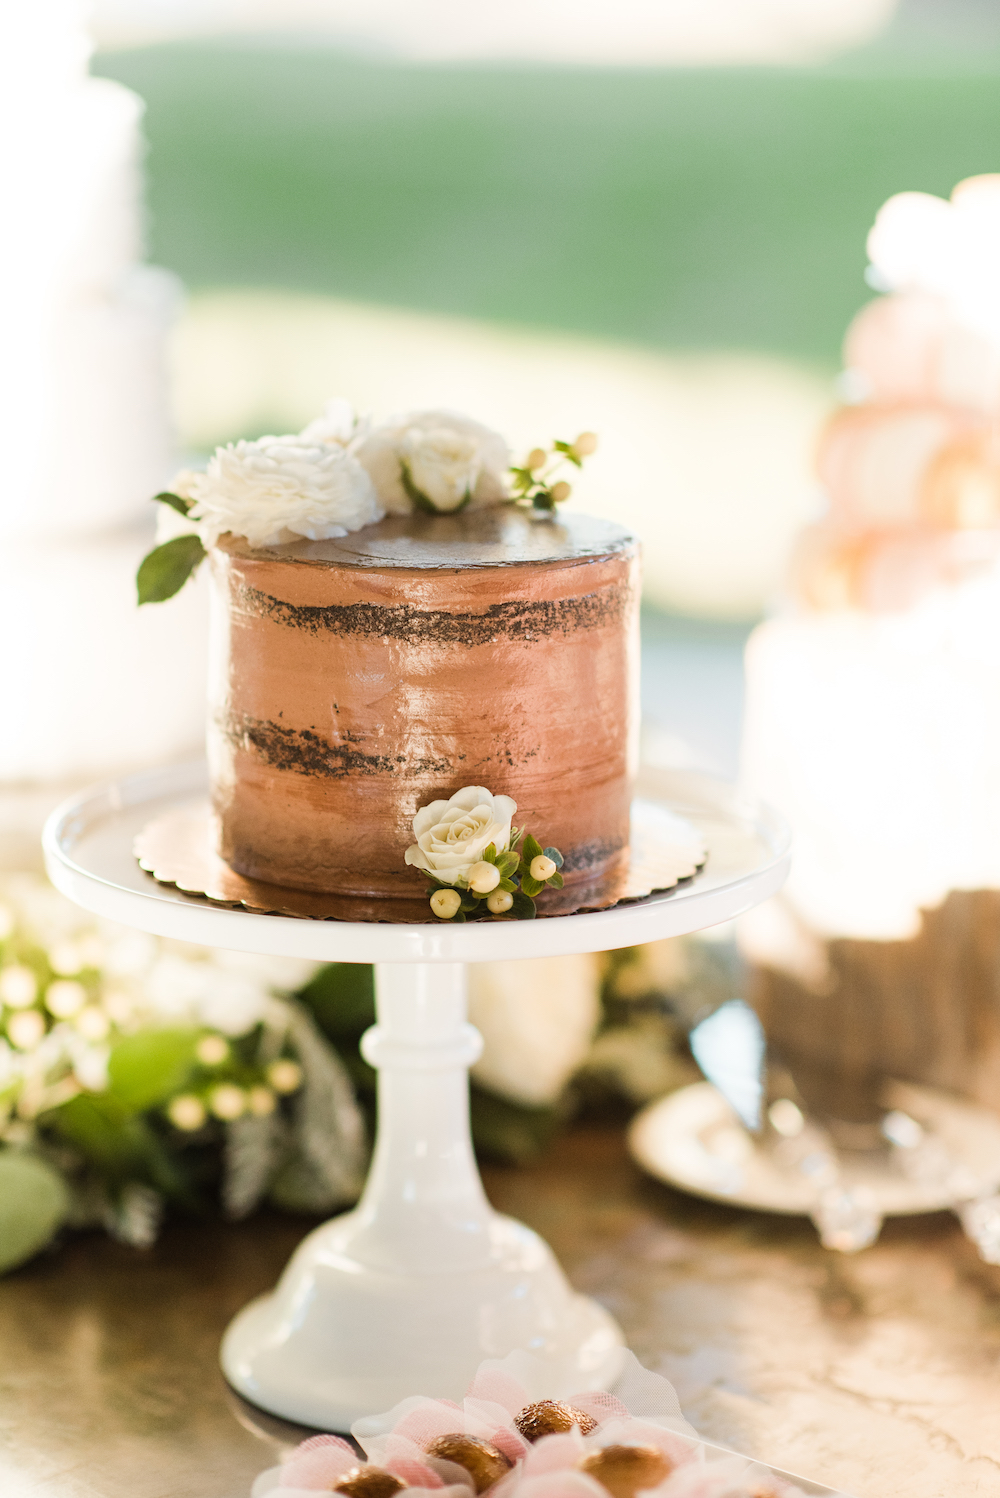 Chocolate Wedding Cake Design